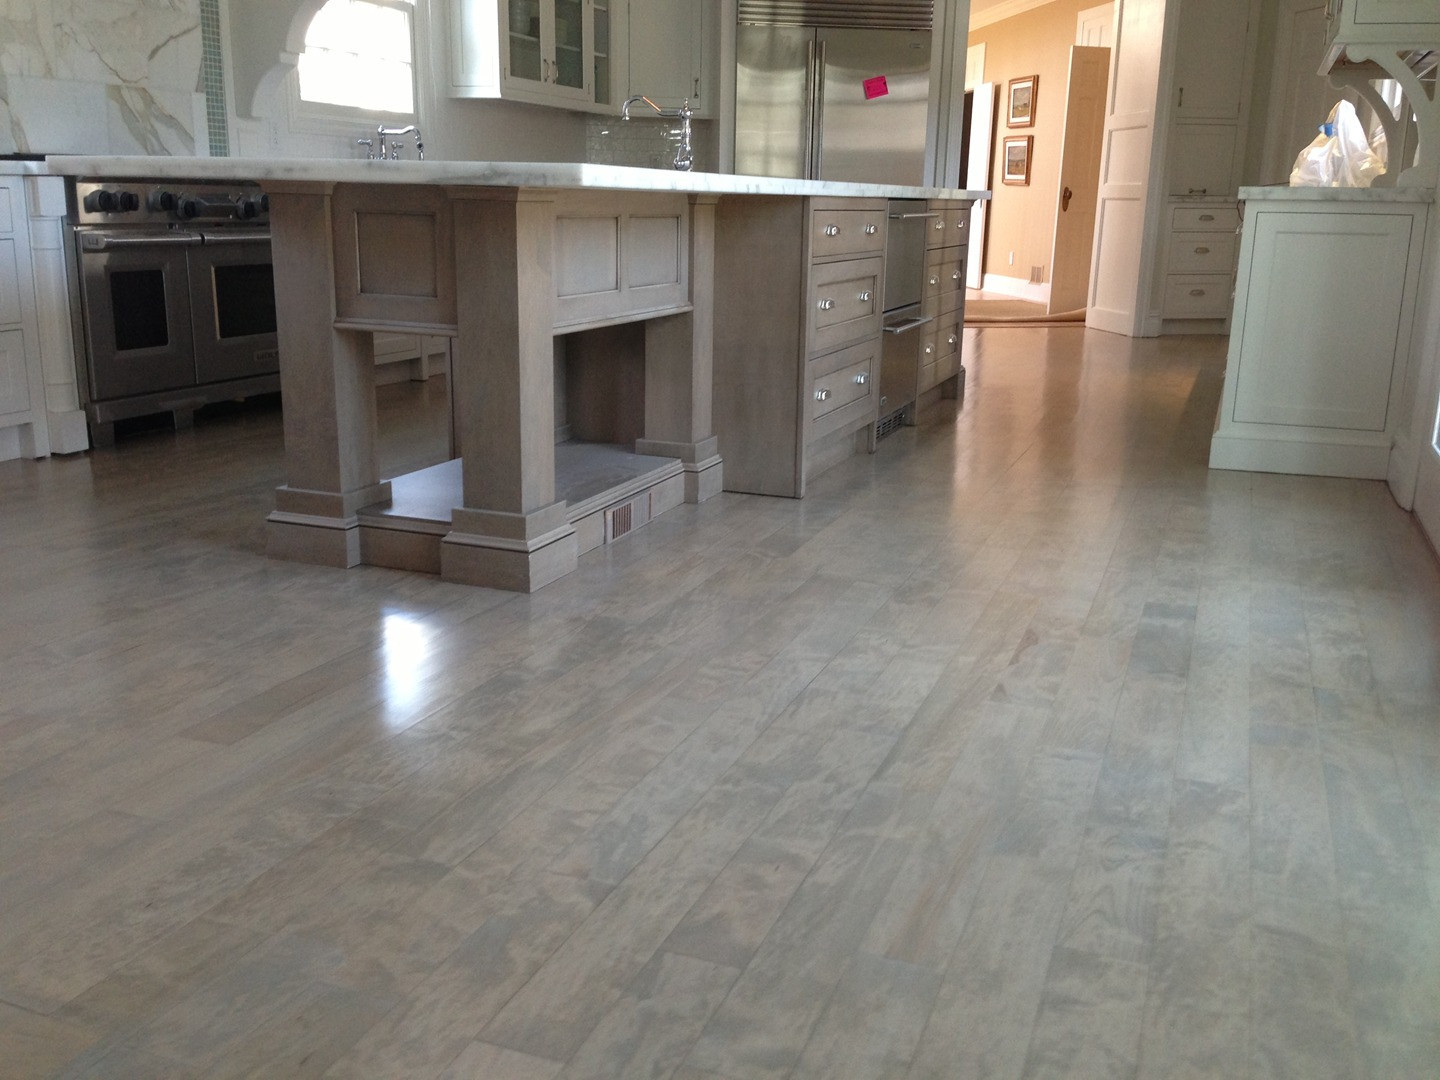 images of red oak hardwood floors of red oak minwax stain www topsimages com throughout gray wood floor stain inspirational hardwood floors home of gray wood floor stain elegant jpg 1440x1080